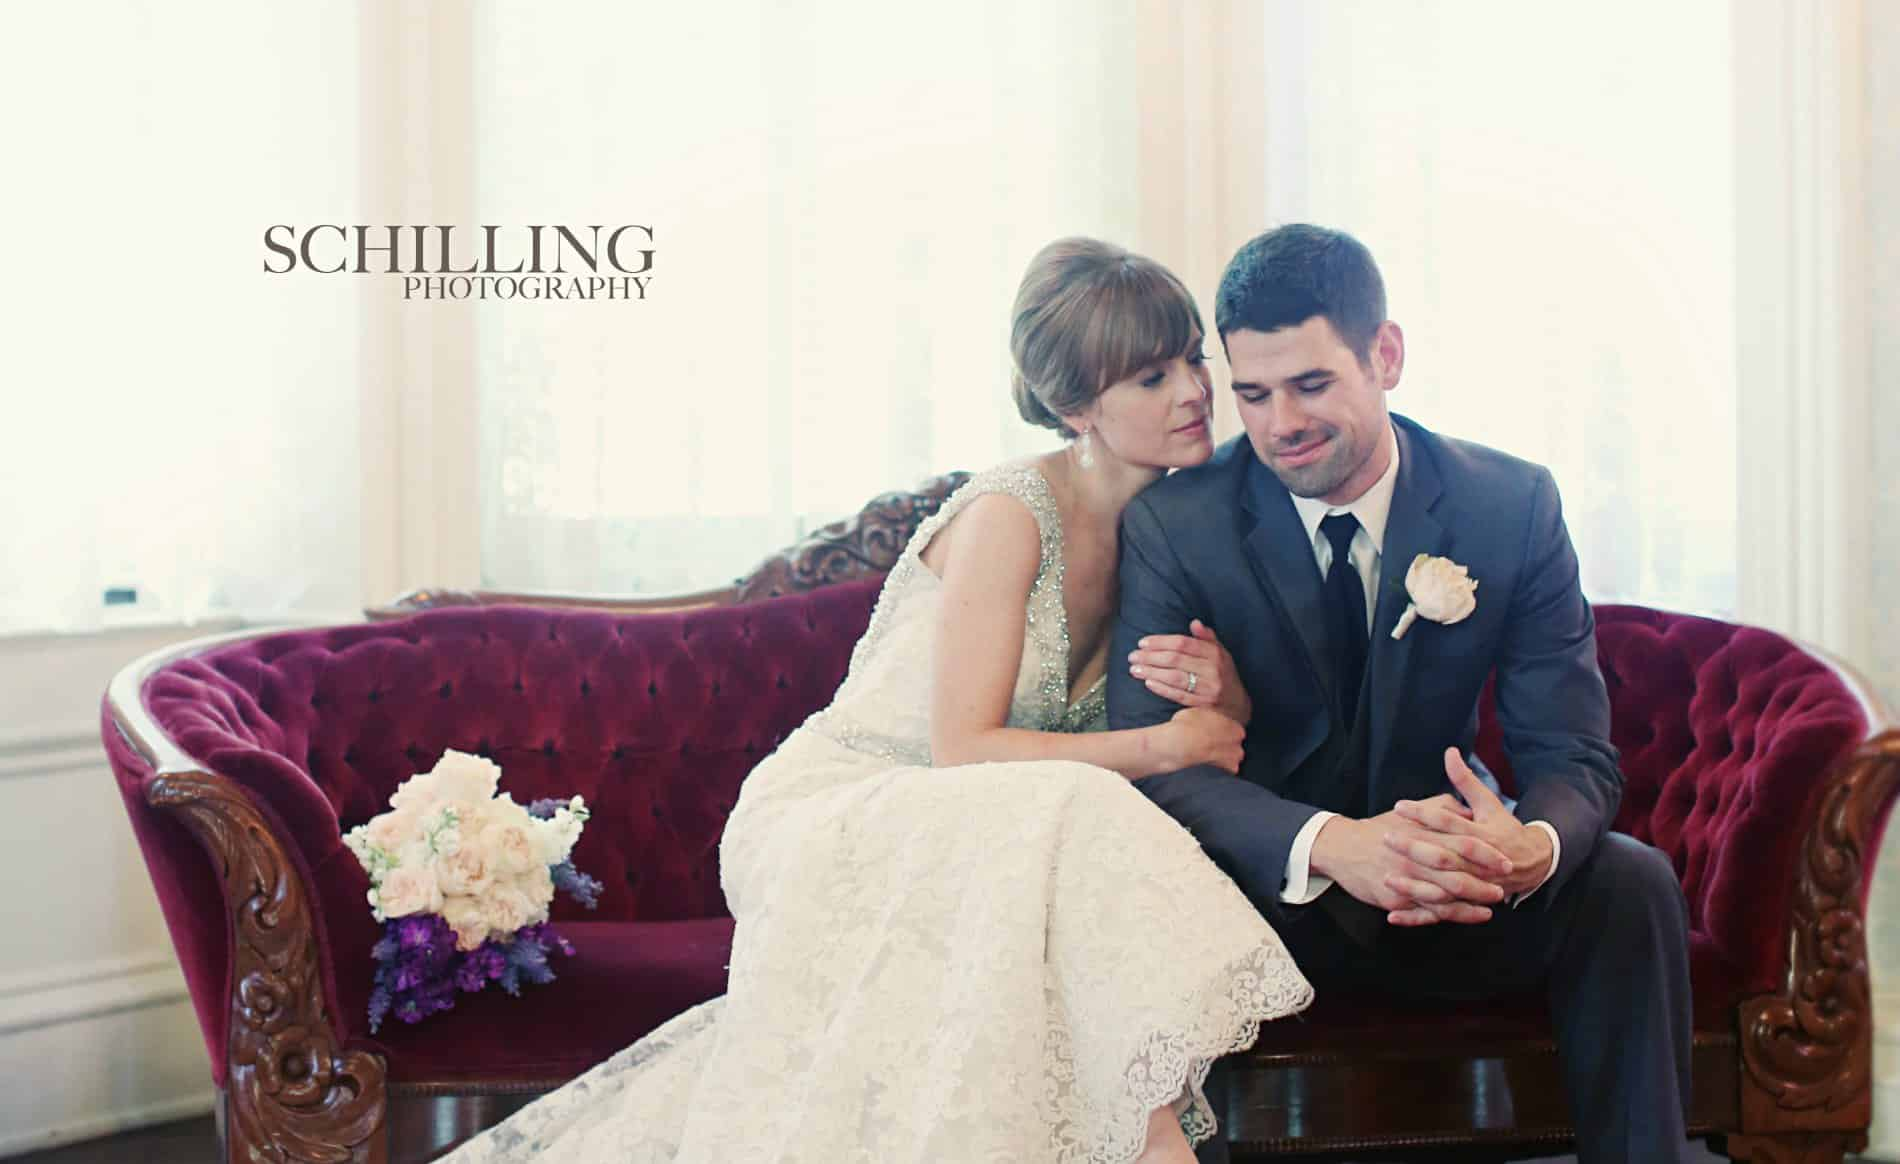 Bride in white dress hugging groom while sitting on a red velvet sofa